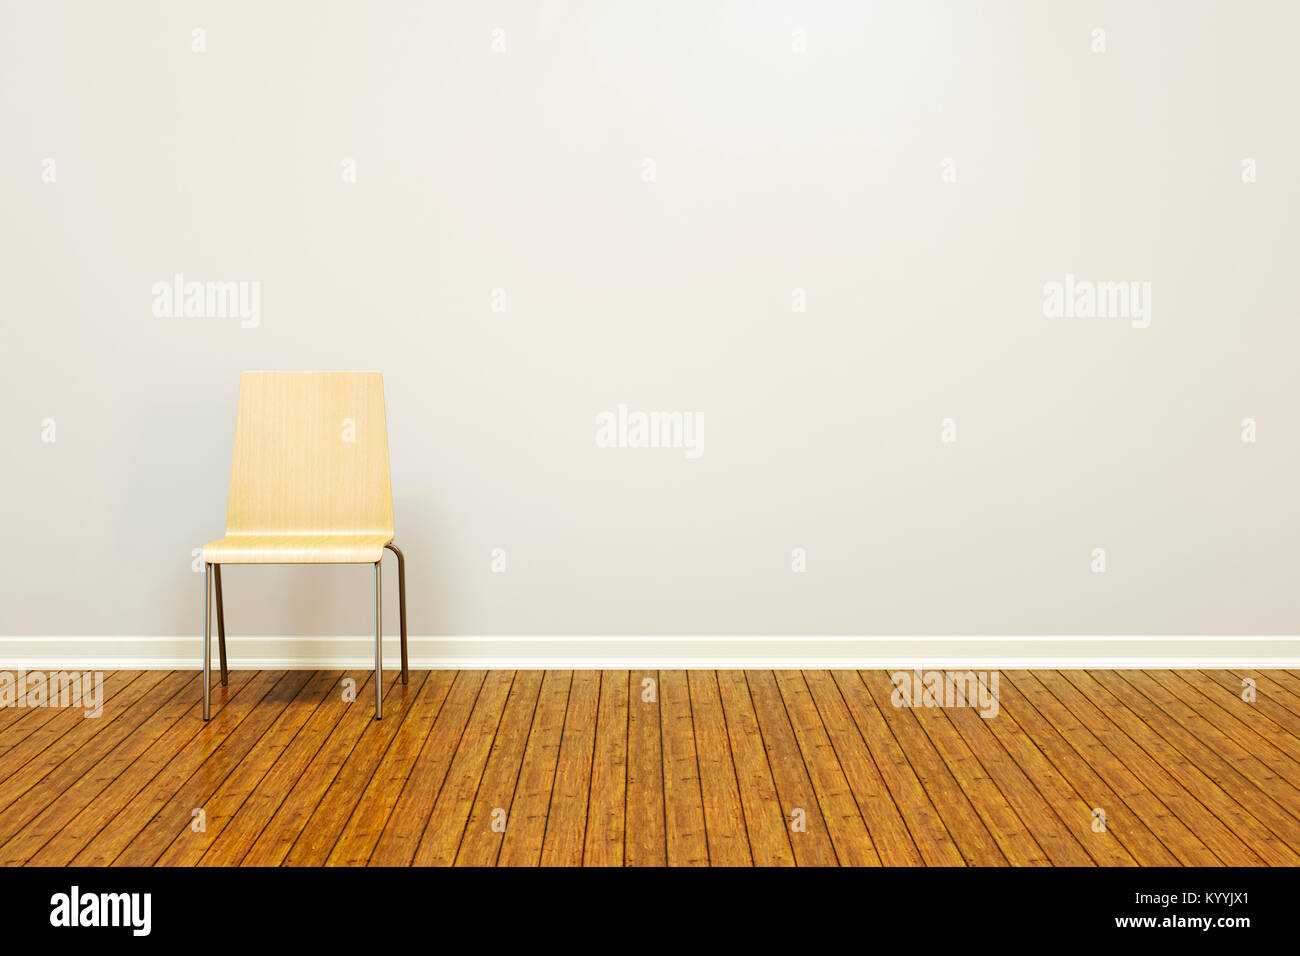 Large Blank Wall In An Empty Room With A Wooden Floor And Basic Chair